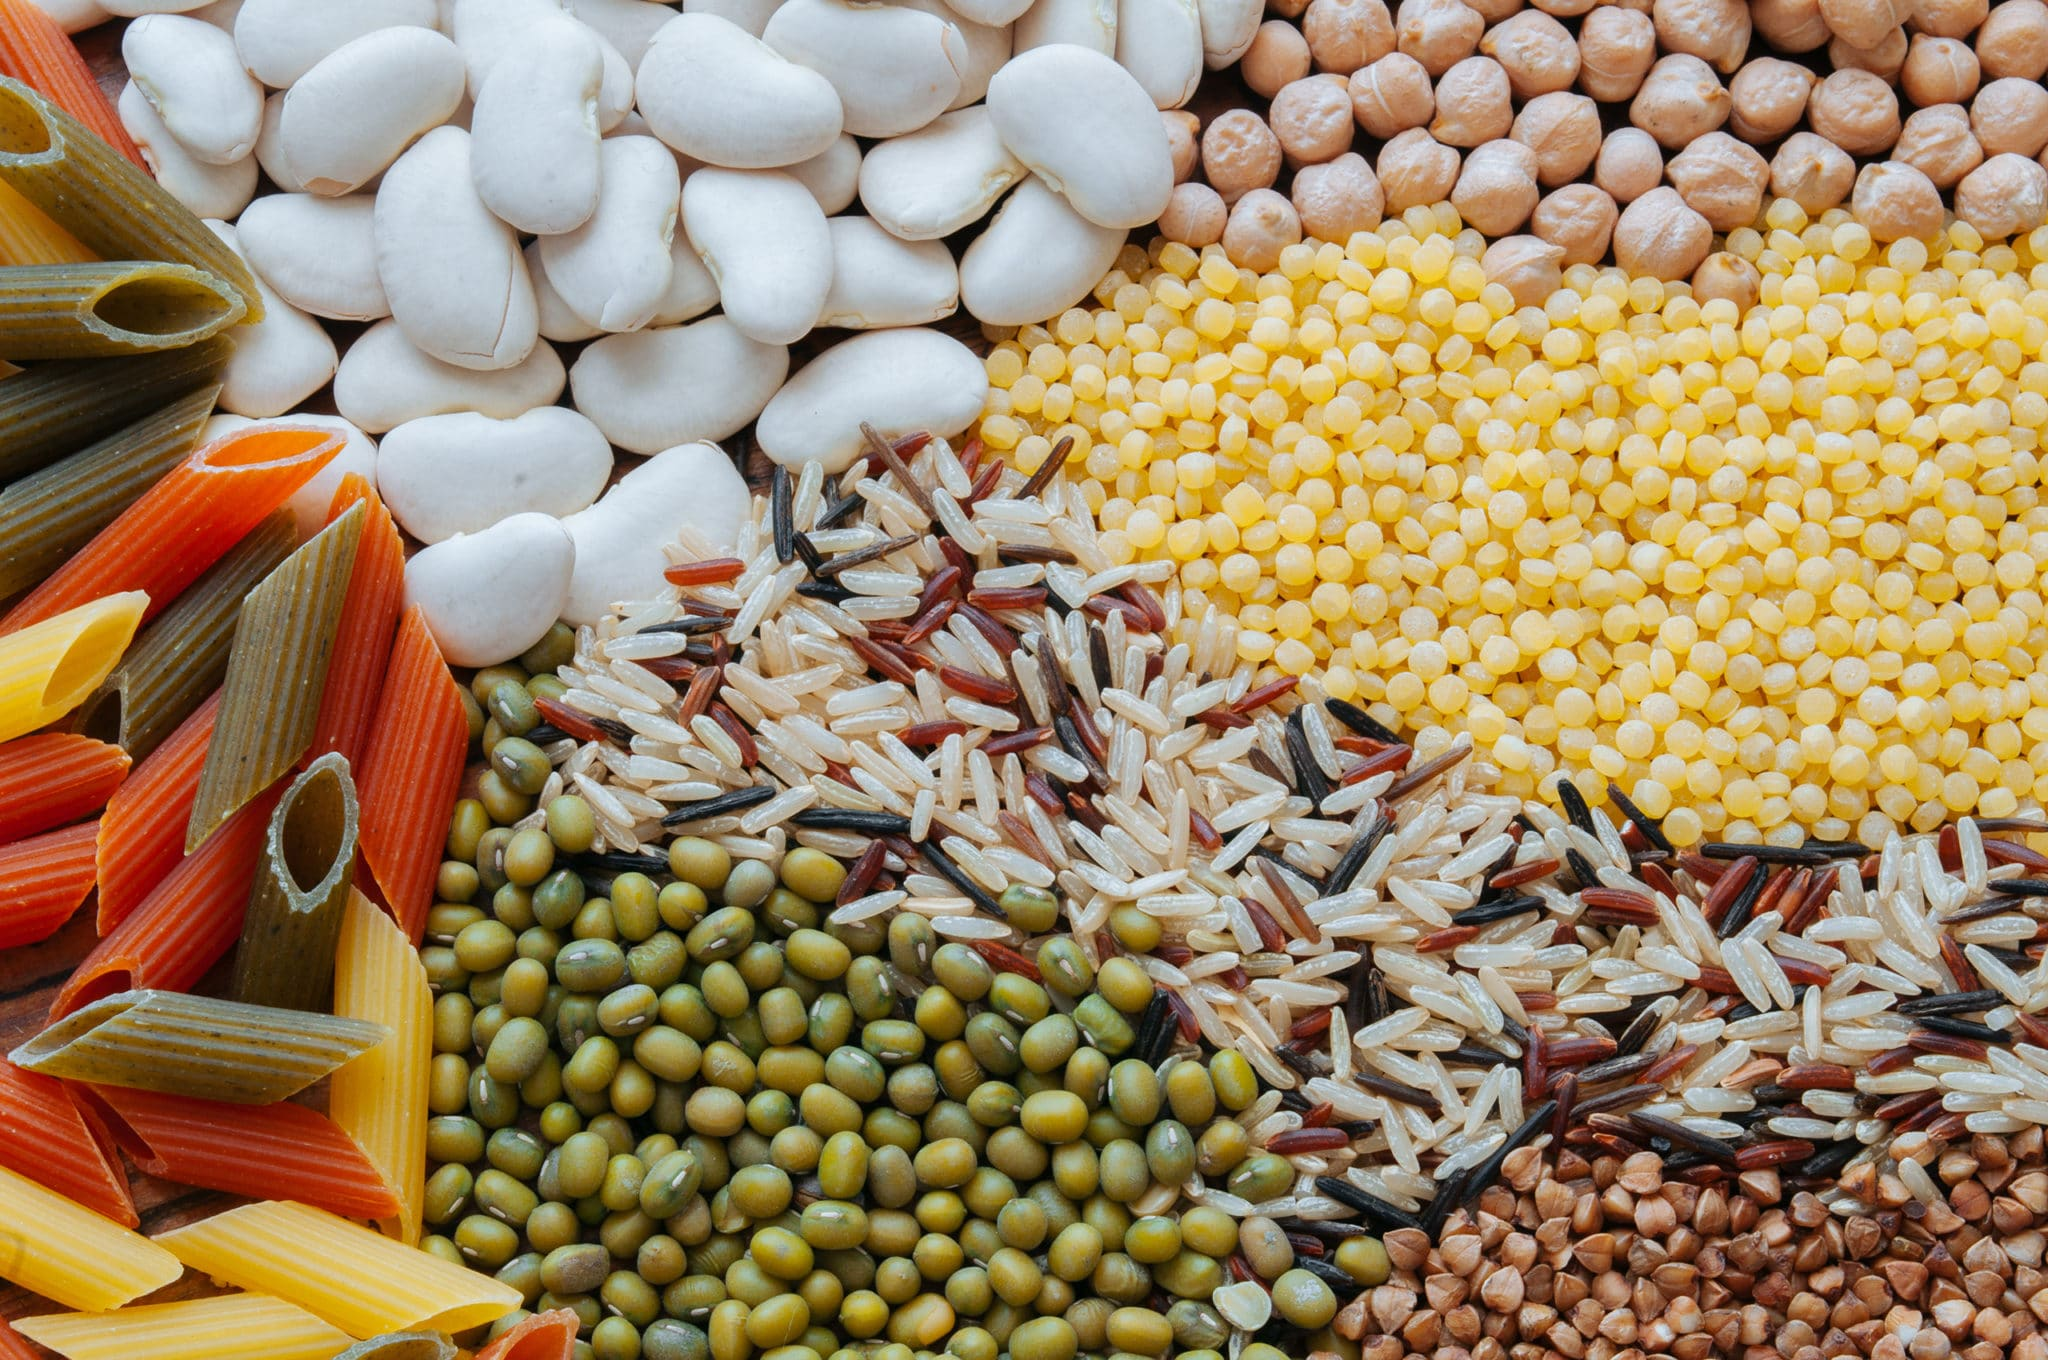 Beans, pasta, and whole grains